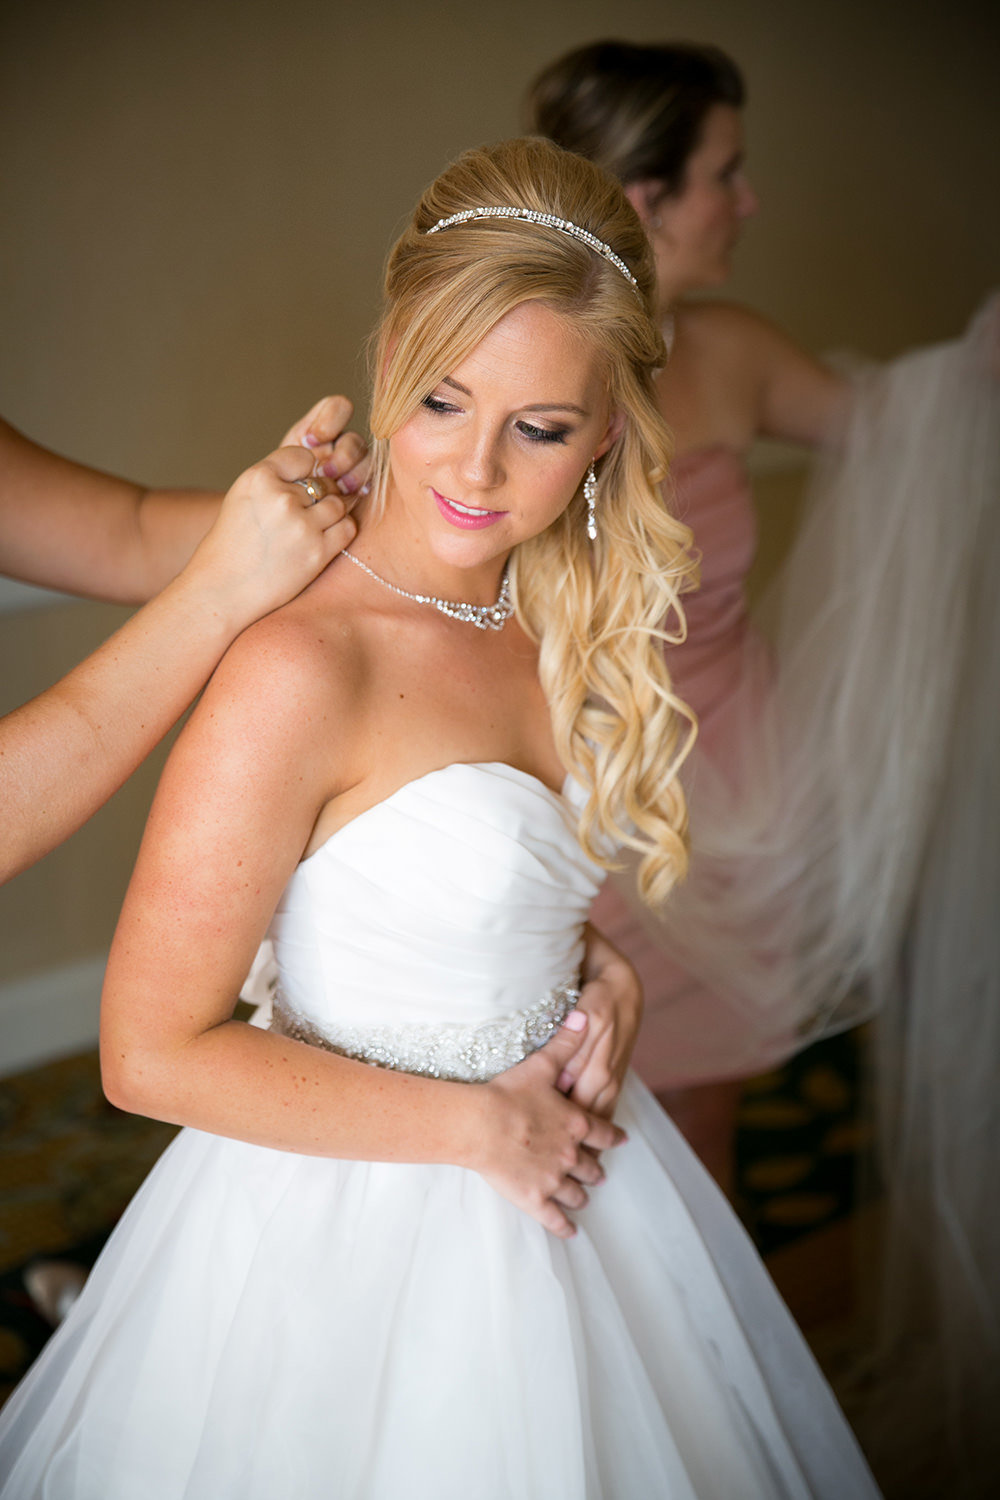 Beautiful blonde bride putting on the finishing touches for her wedding day